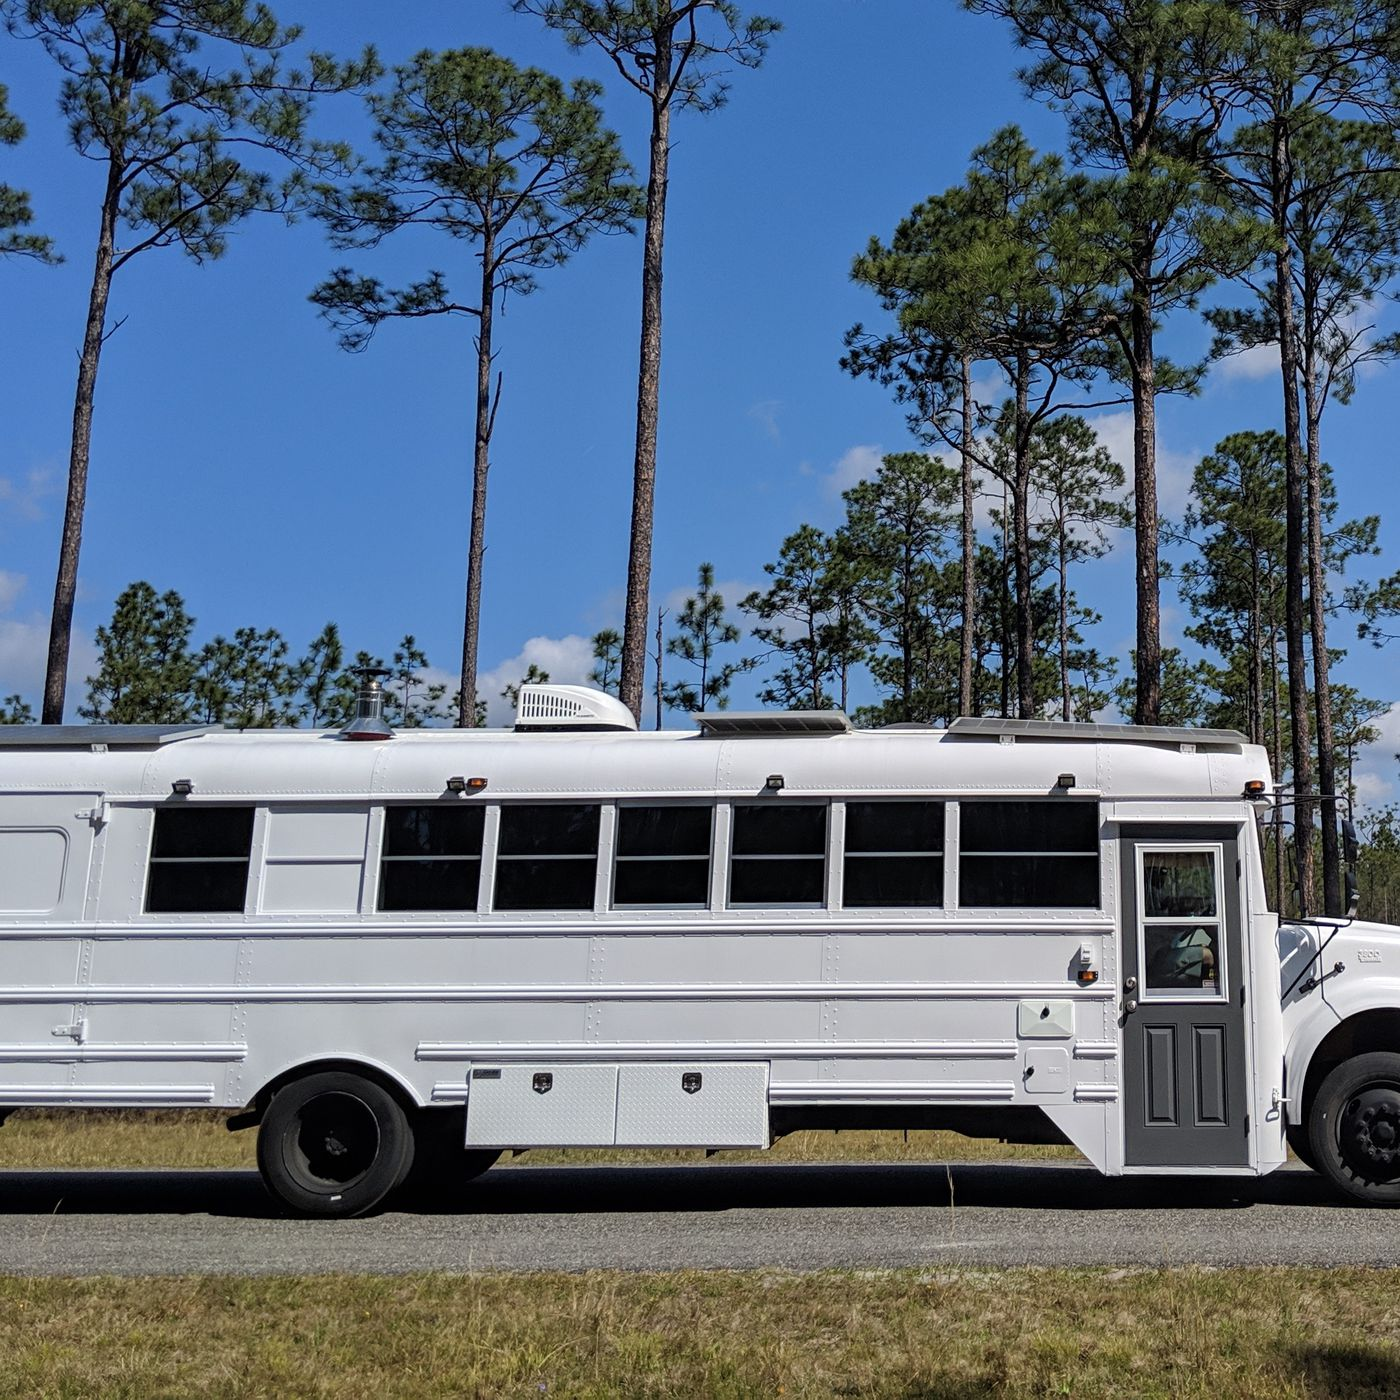 Converted School Bus Camper Is A Cozy Tiny Home On Wheels Curbed